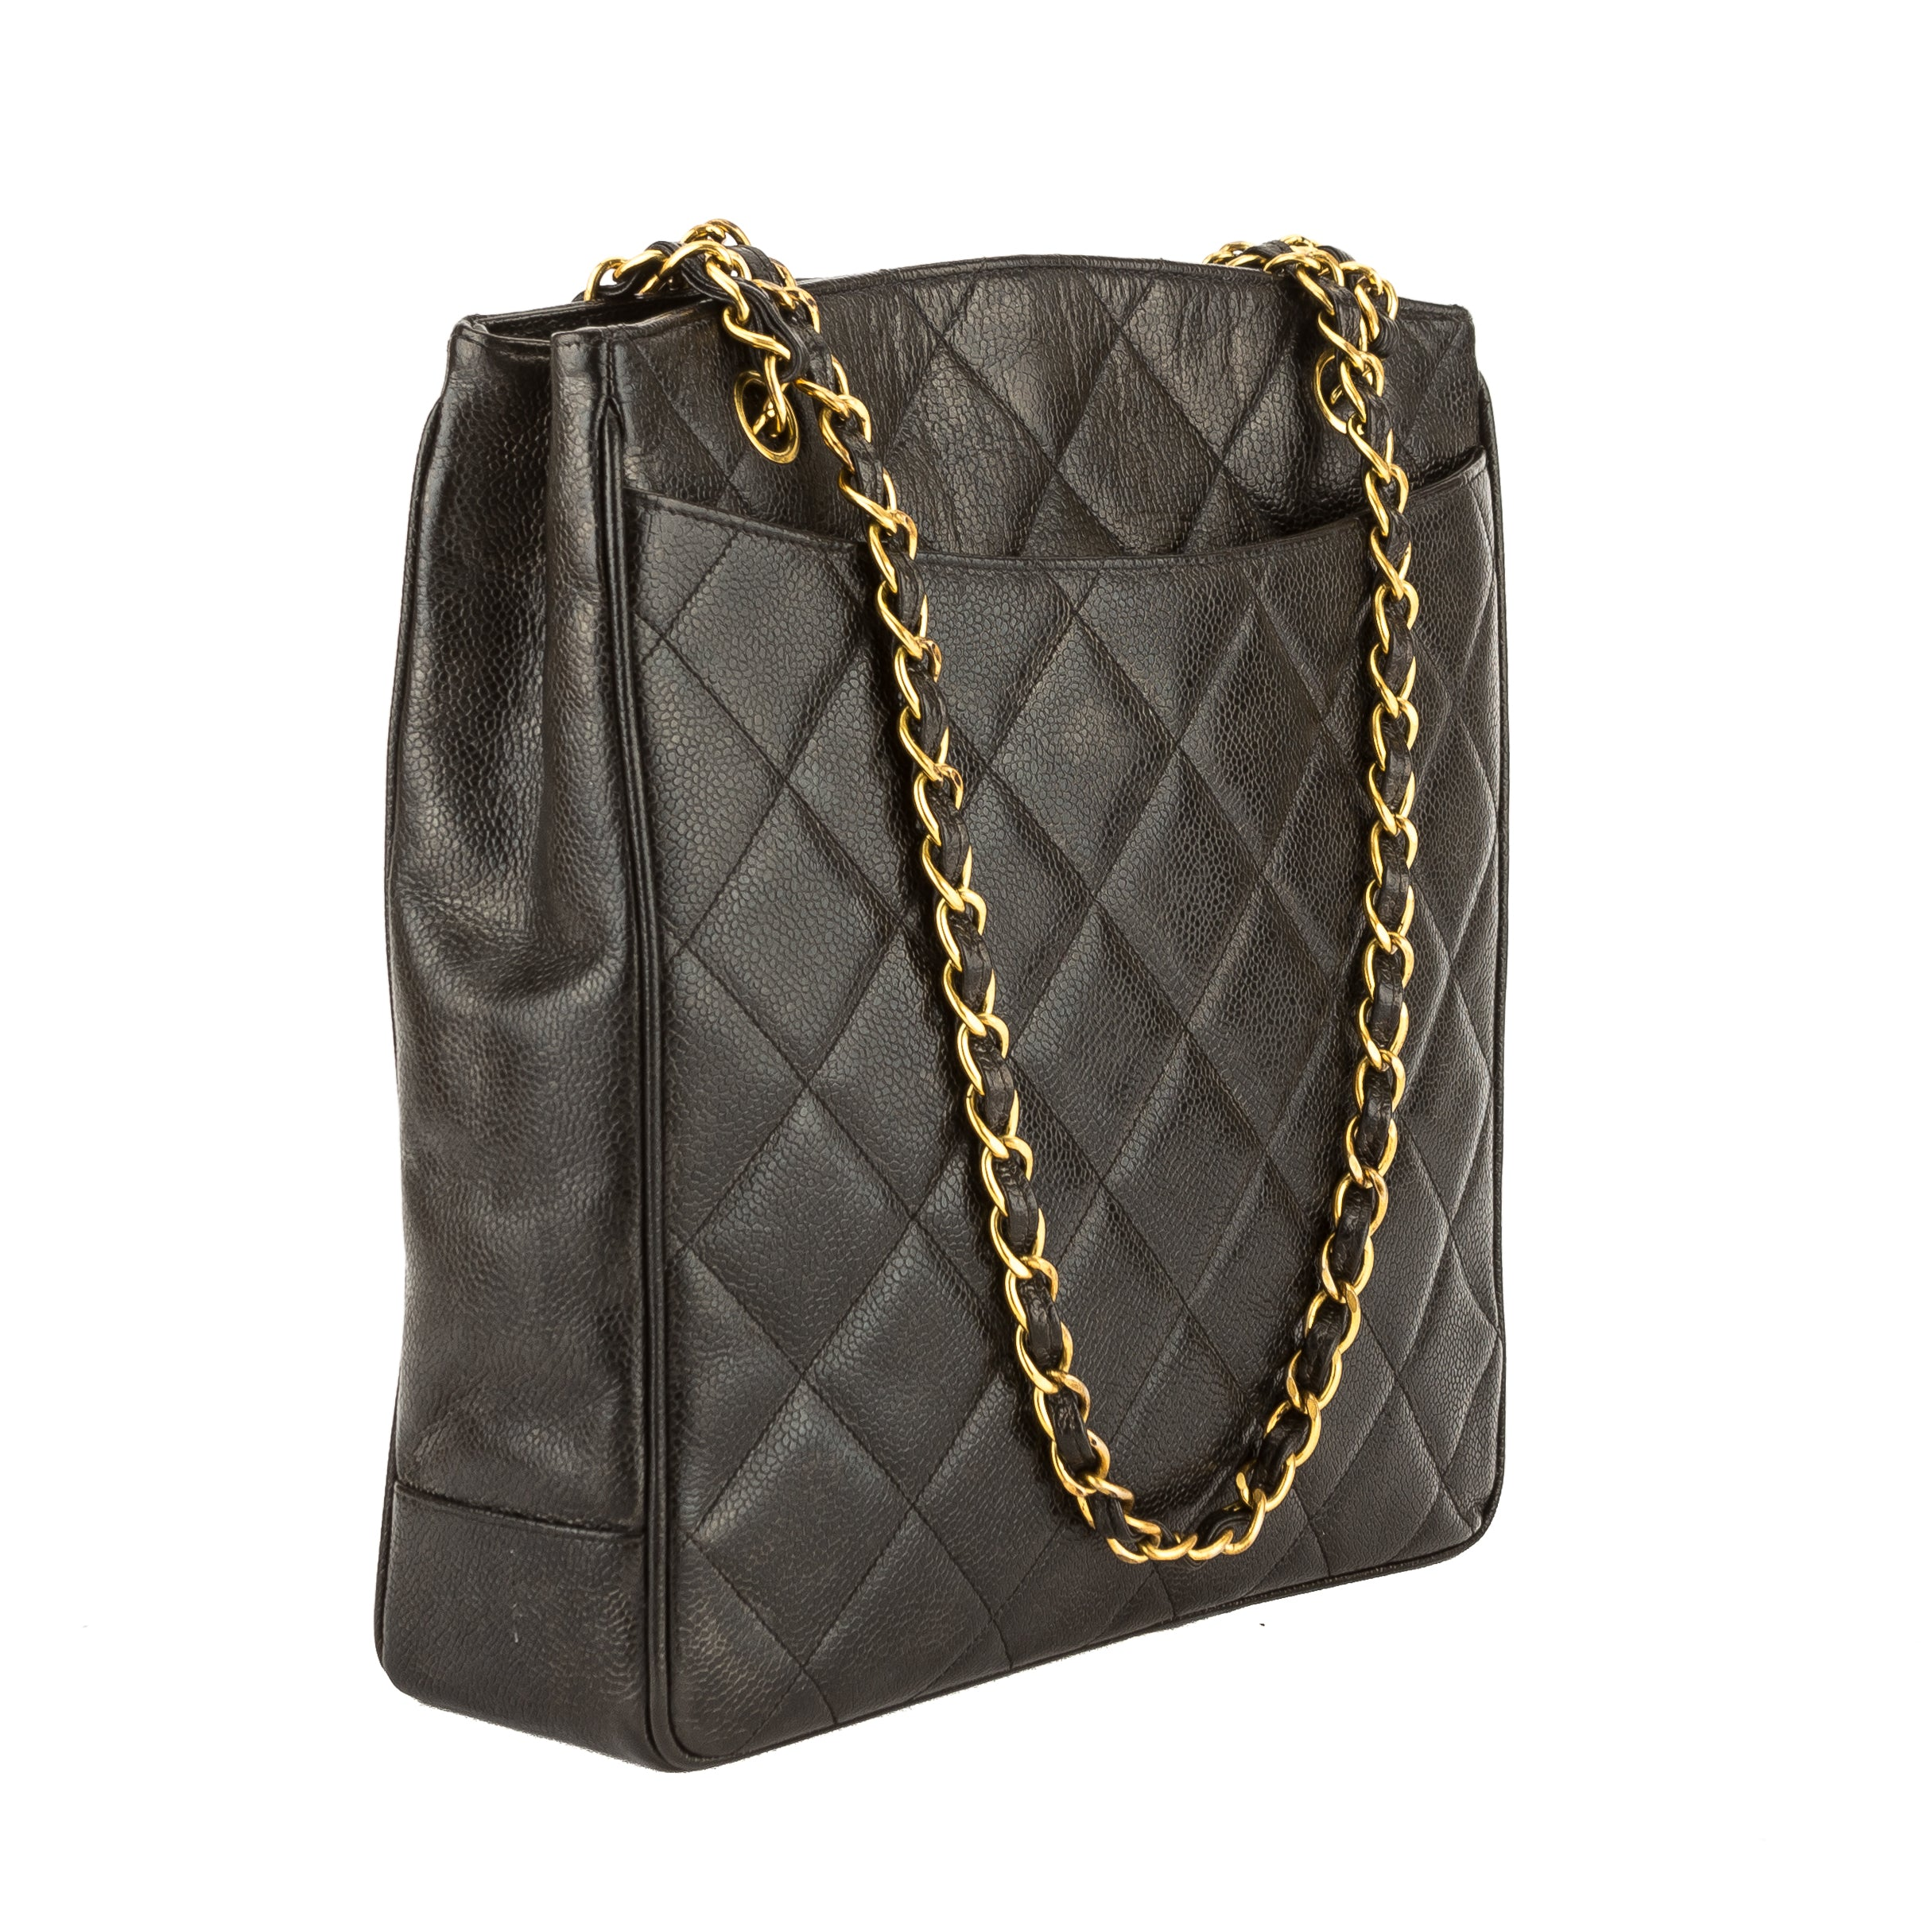 1ee184c77ce8 Chanel Black Quilted Caviar Leather Chain Shoulder Bag (Pre Owned ...